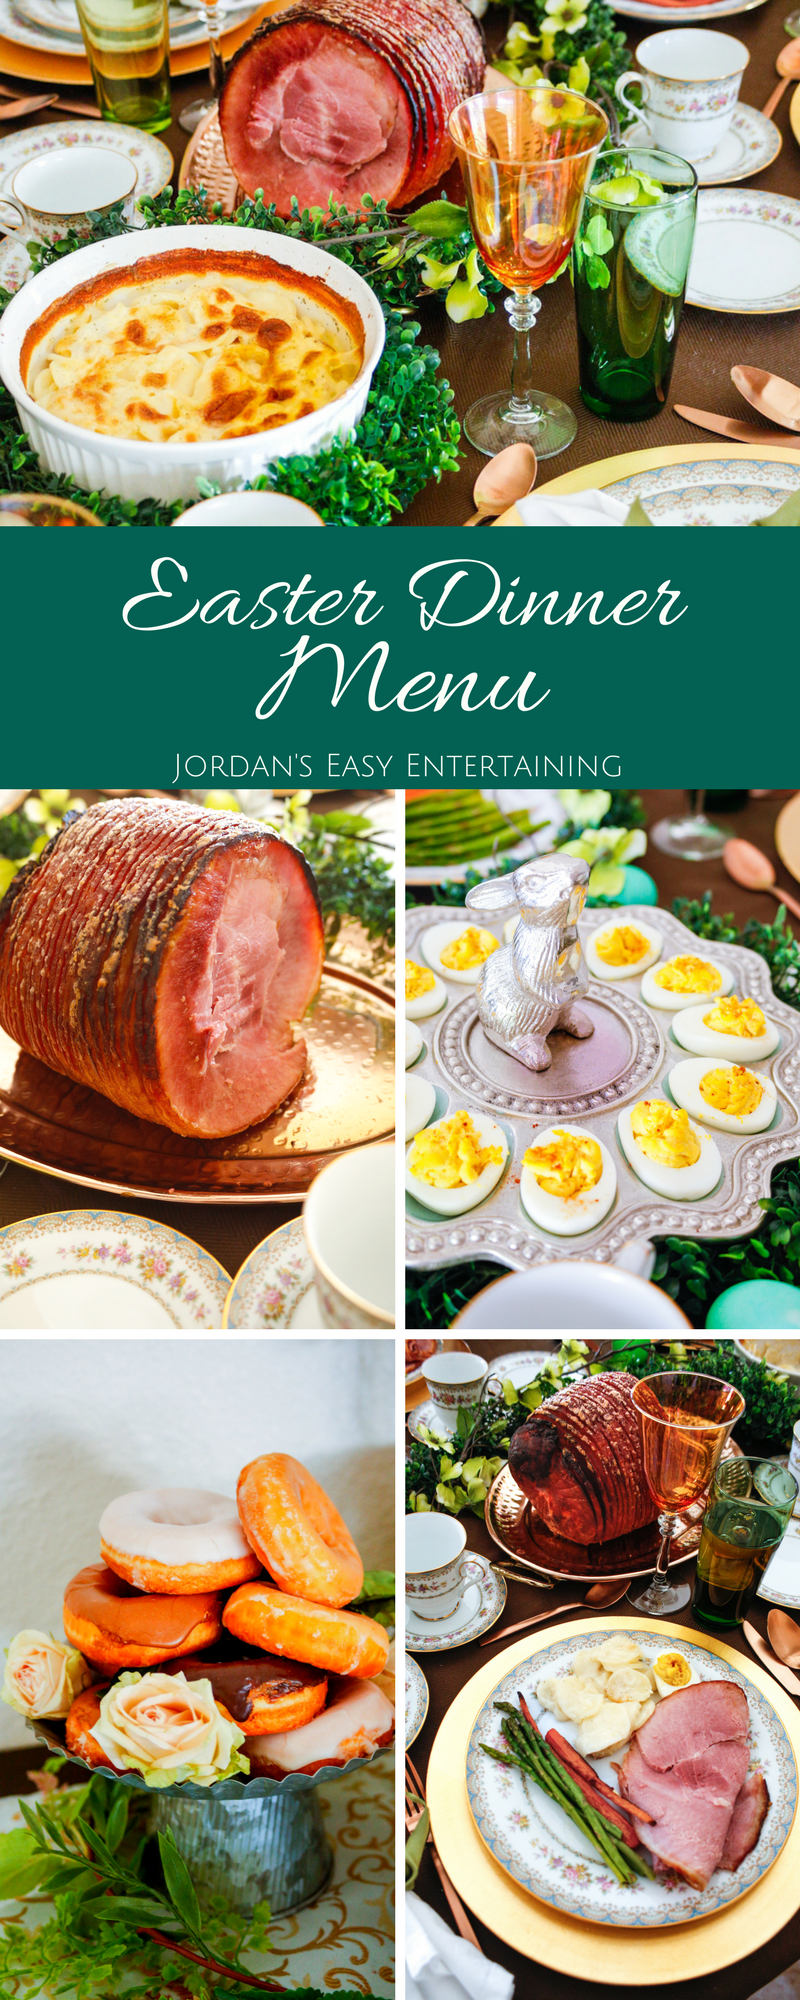 Easter Dinner Menu And Serving Suggestions Jordan S Easy Entertaining